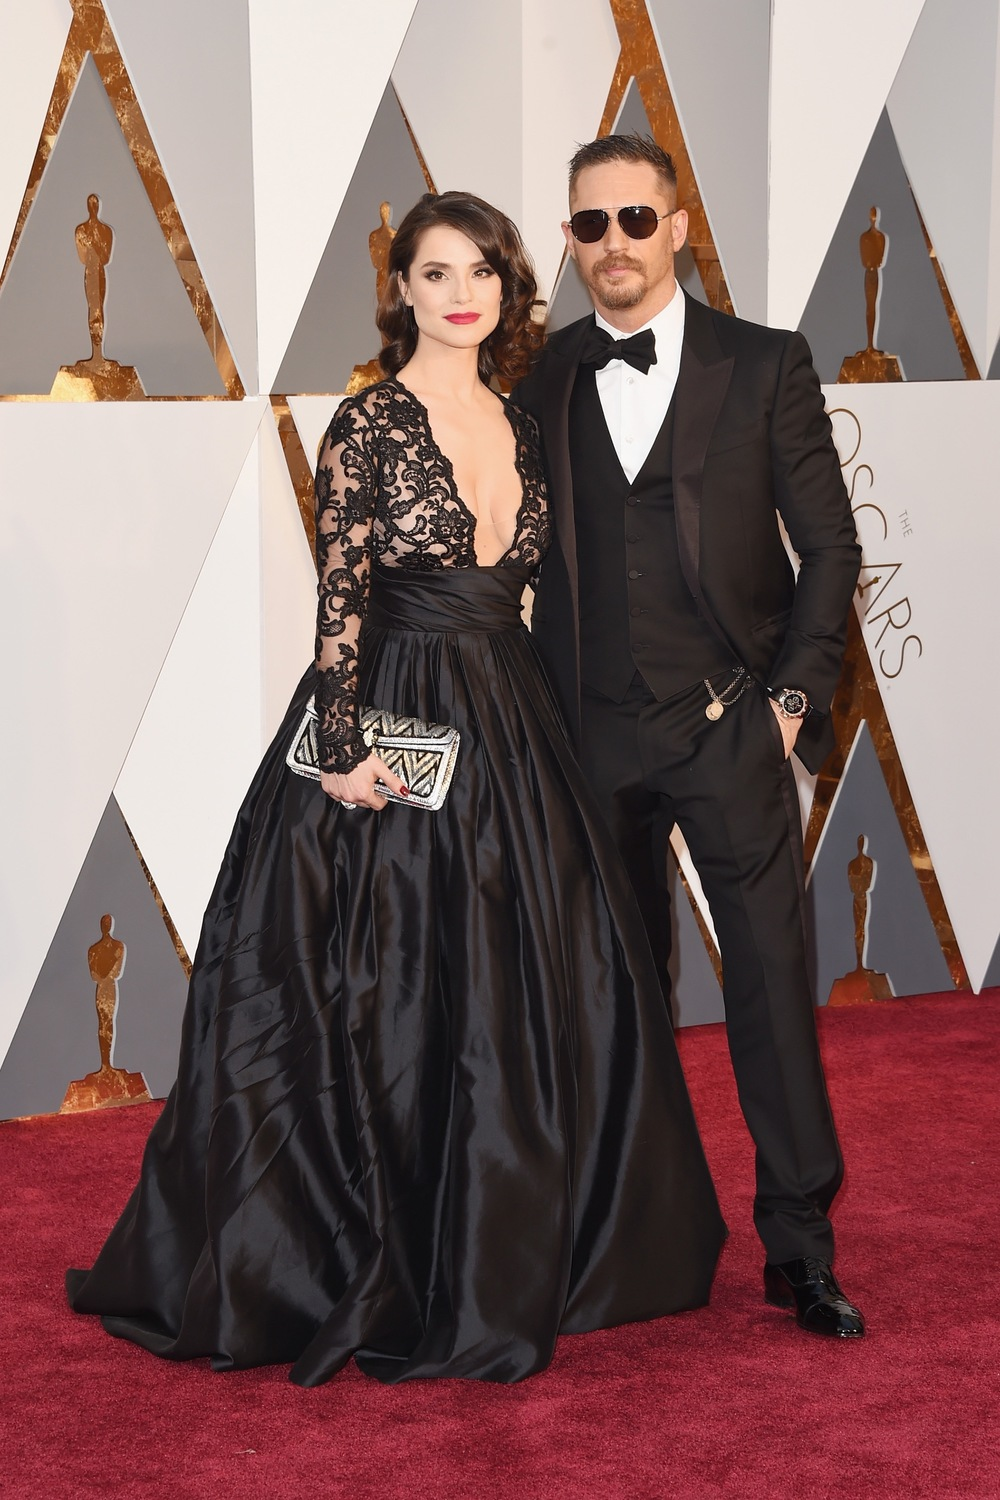 Charlotte Riley in Gauri & Nainika and Tom Hardy in Gucci at the 88th Annual Academy Awards